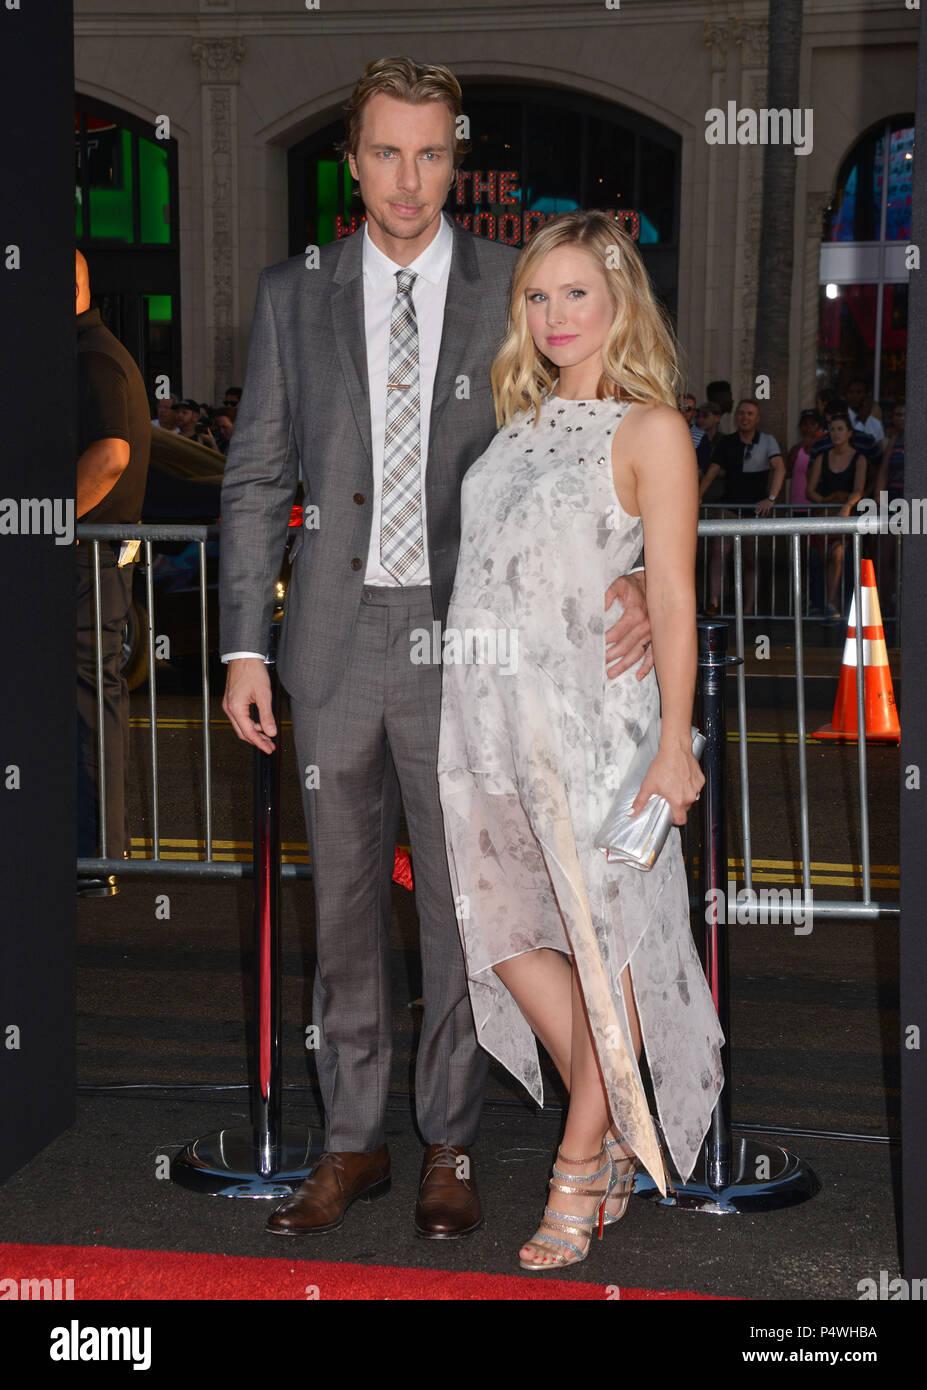 Dax Shepard, Kristen Bell 105 at the This Is Where I Leave You Premiere at the TCL Chinese Theatre in Los Angeles.Dax Shepard, Kristen Bell 105 ------------- Red Carpet Event, Vertical, USA, Film Industry, Celebrities,  Photography, Bestof, Arts Culture and Entertainment, Topix Celebrities fashion /  Vertical, Best of, Event in Hollywood Life - California,  Red Carpet and backstage, USA, Film Industry, Celebrities,  movie celebrities, TV celebrities, Music celebrities, Photography, Bestof, Arts Culture and Entertainment,  Topix, vertical,  family from from the year , 2014, inquiry tsuni@Gamma- - Stock Image